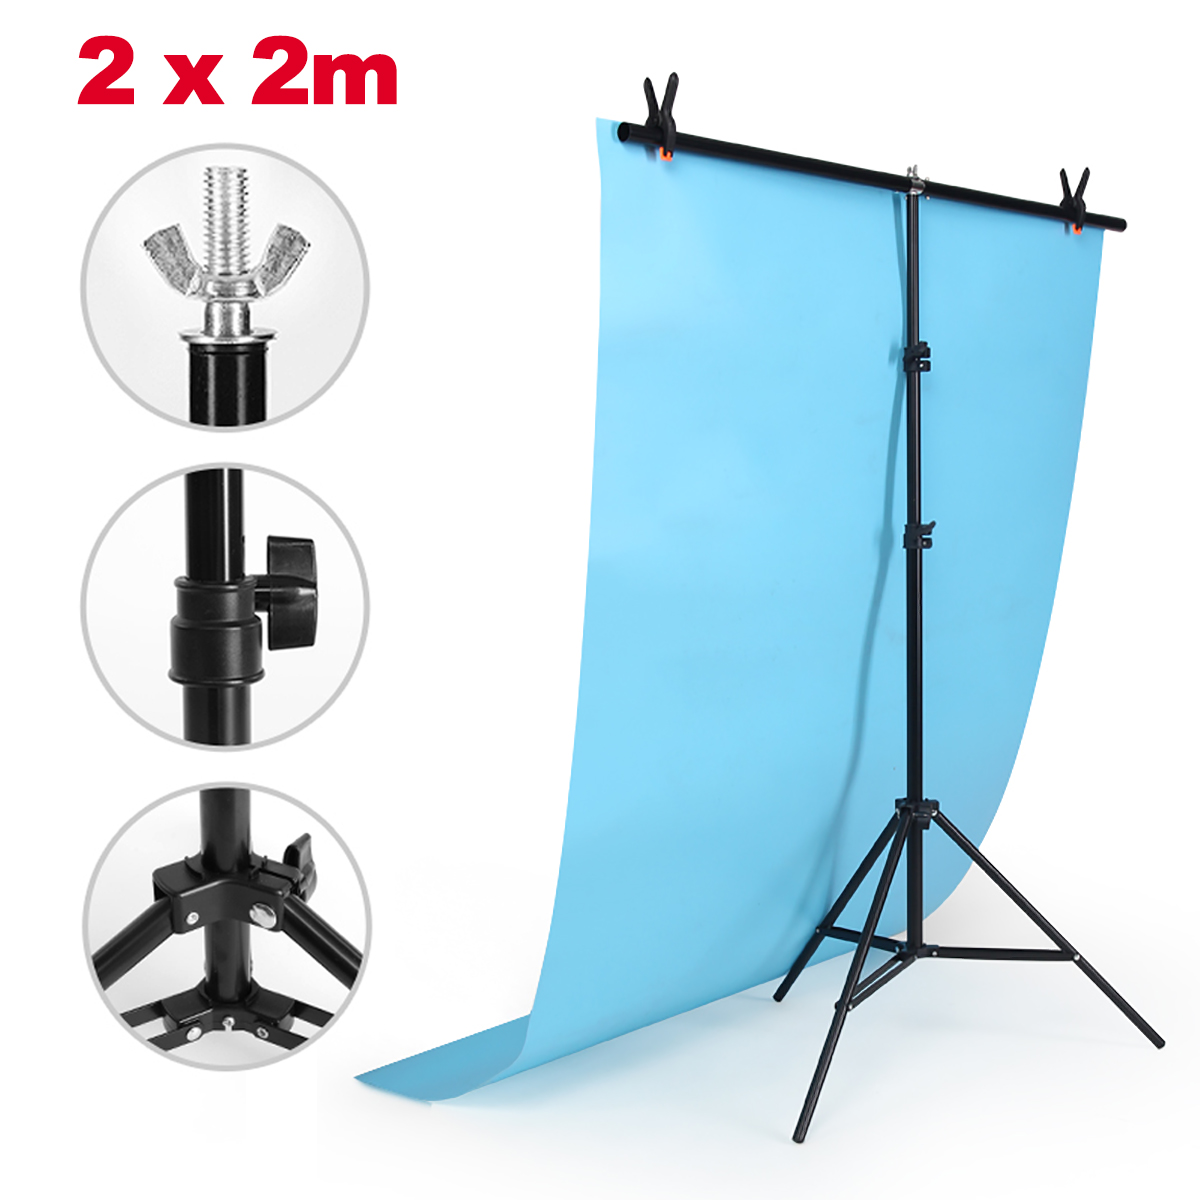 2*2m Adjustable Background Support Stand Photo Backdrop Crossbar Kit Photography New Arrival 2 8m x 3m pro adjustable background support stand photo backdrop crossbar kit photography stand 3 clips for photo studio